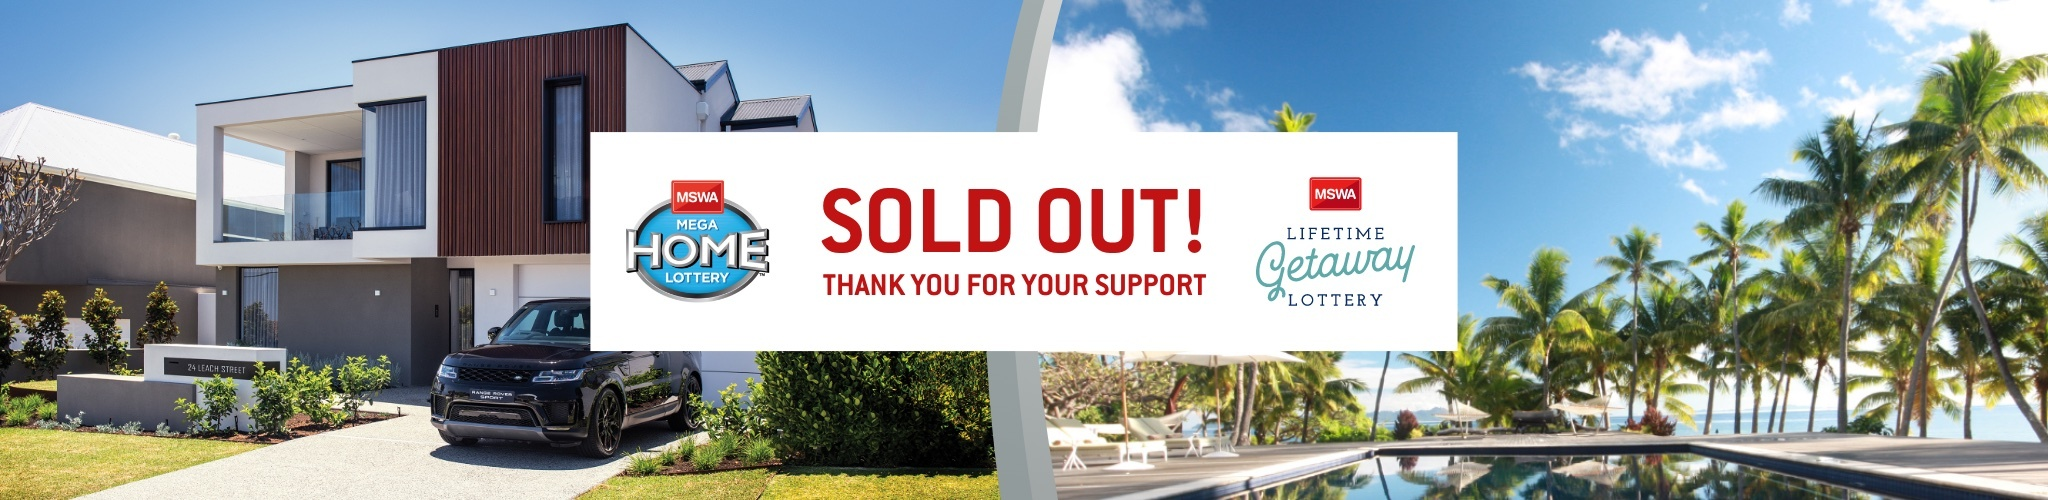 Sold Out thank you for your support.